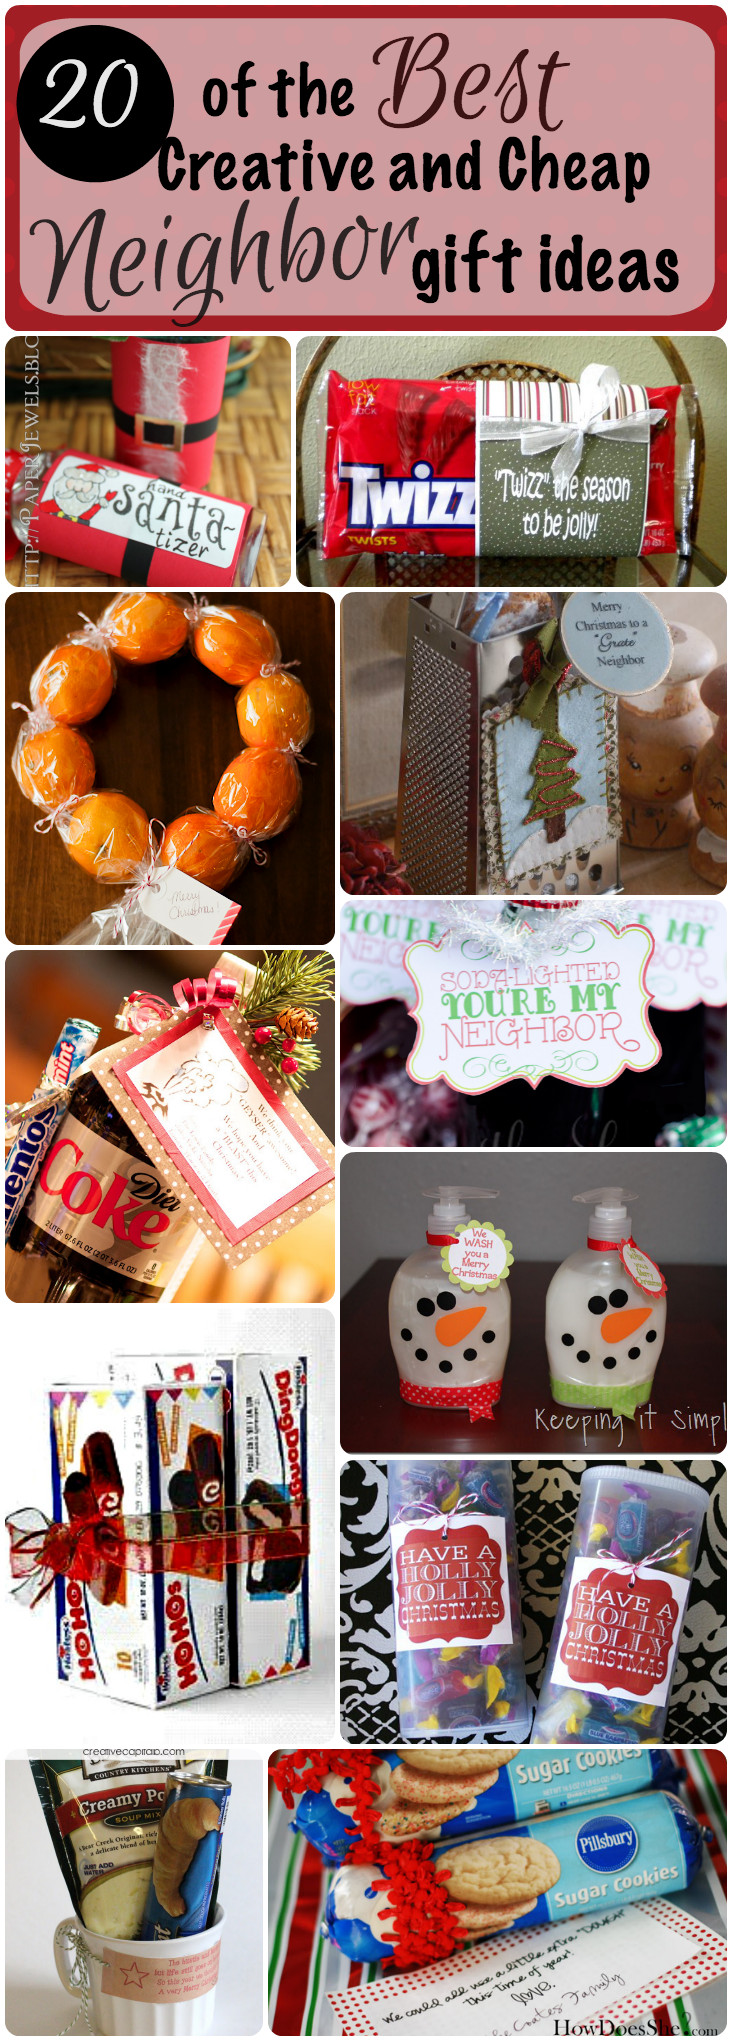 Holiday Gift Ideas For Neighbors  20 of the Best Creative and Cheap Neighbor Gifts for Christmas